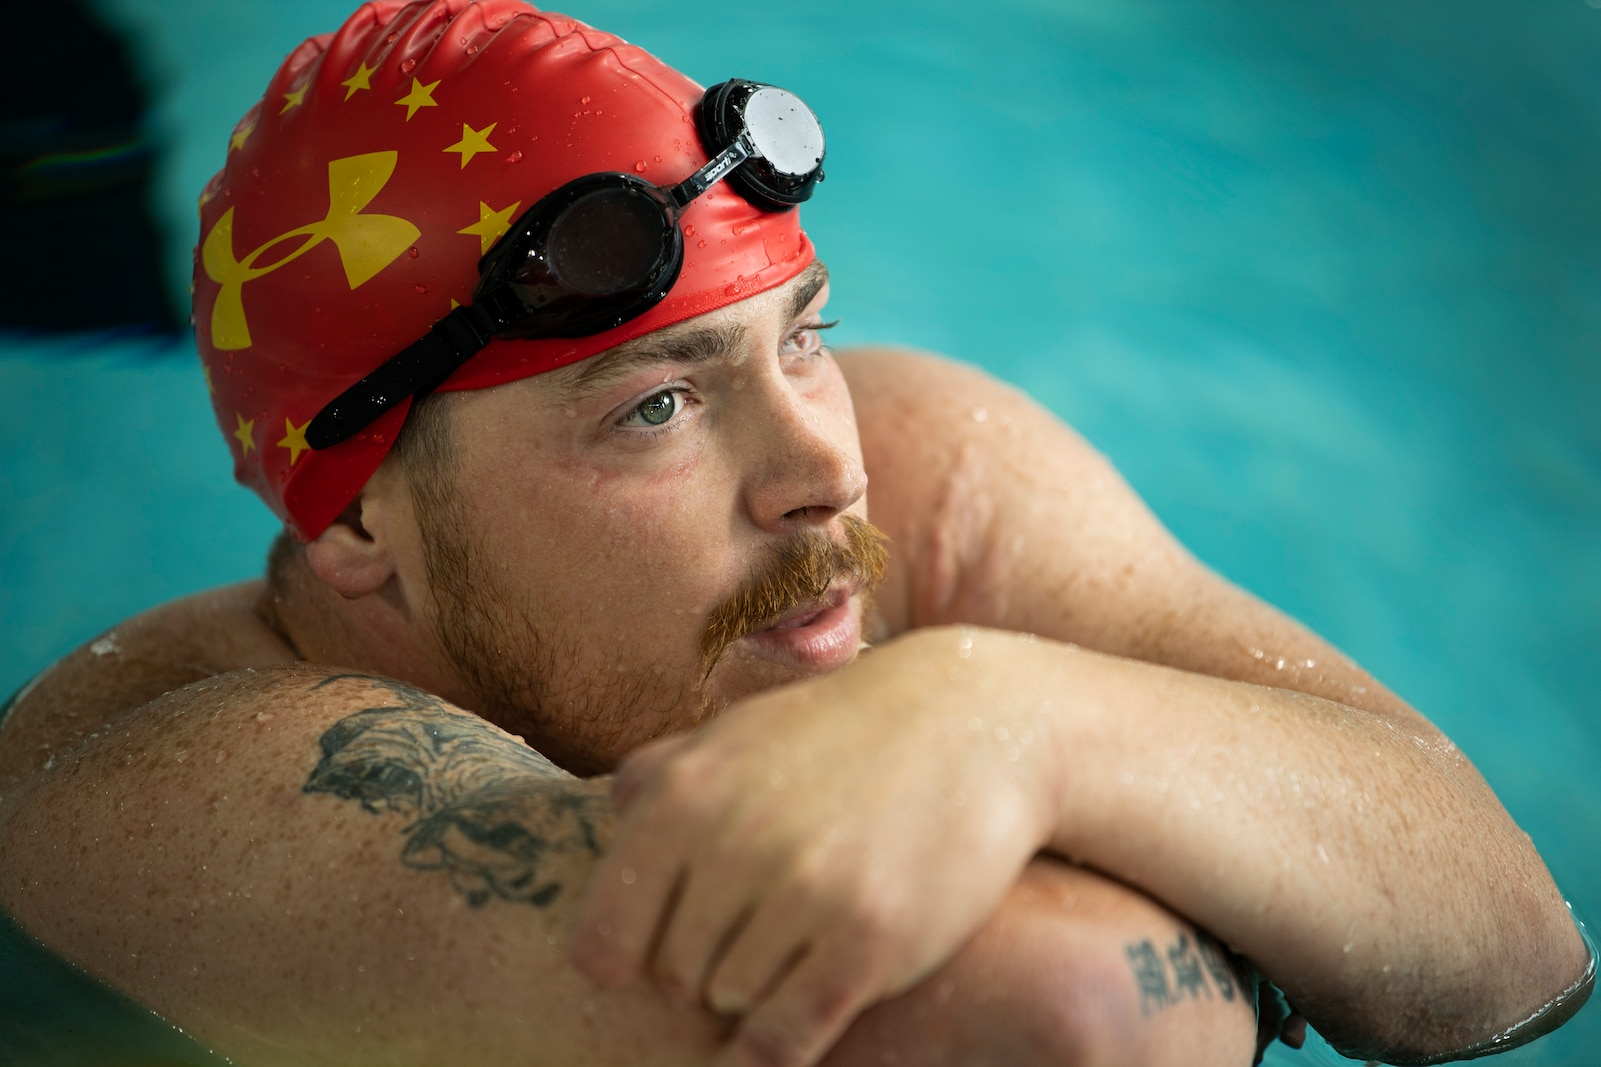 U.S. Marine Corps veteran Isaac Blunt participates at the DoD Warrior Games swimming competition in Tampa, Florida, June 29, 2019.  The 2019 Warrior Games consist of 13 Paralympic-style sports, and more than 300 athletes representing the U.S. Marine Corps, Army, Navy, Air Force, Special Operations Command, and five international teams.